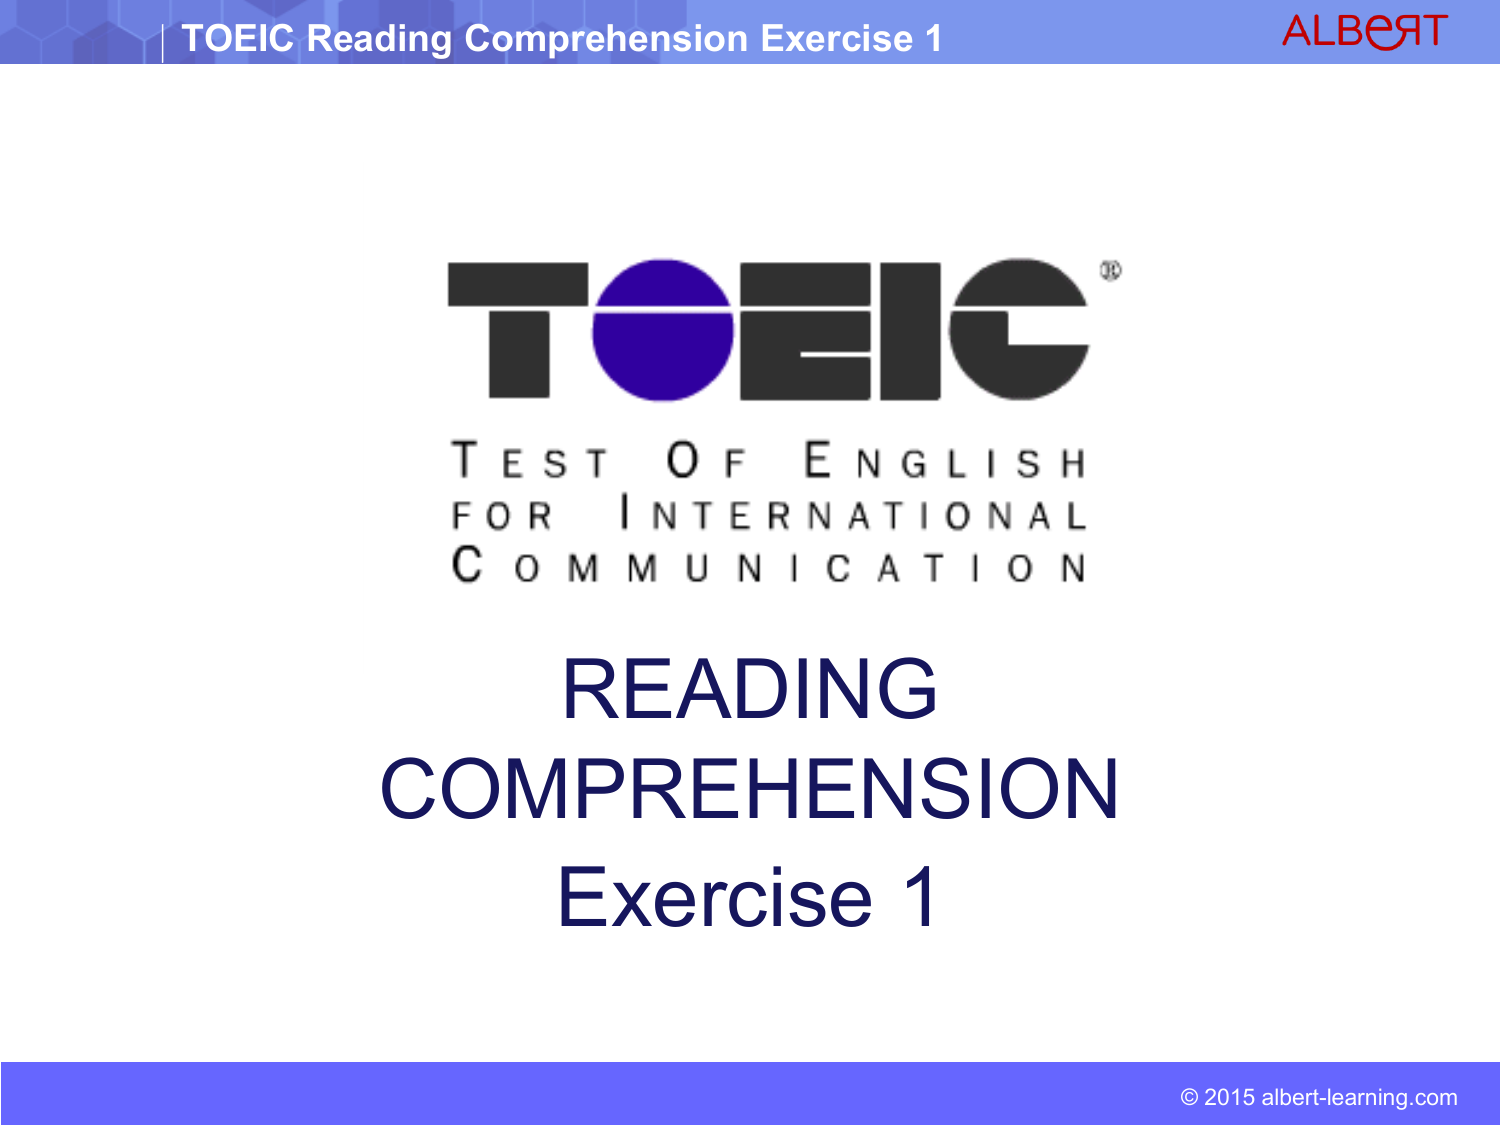 TOEIC Reading Comprehension Exercise 1